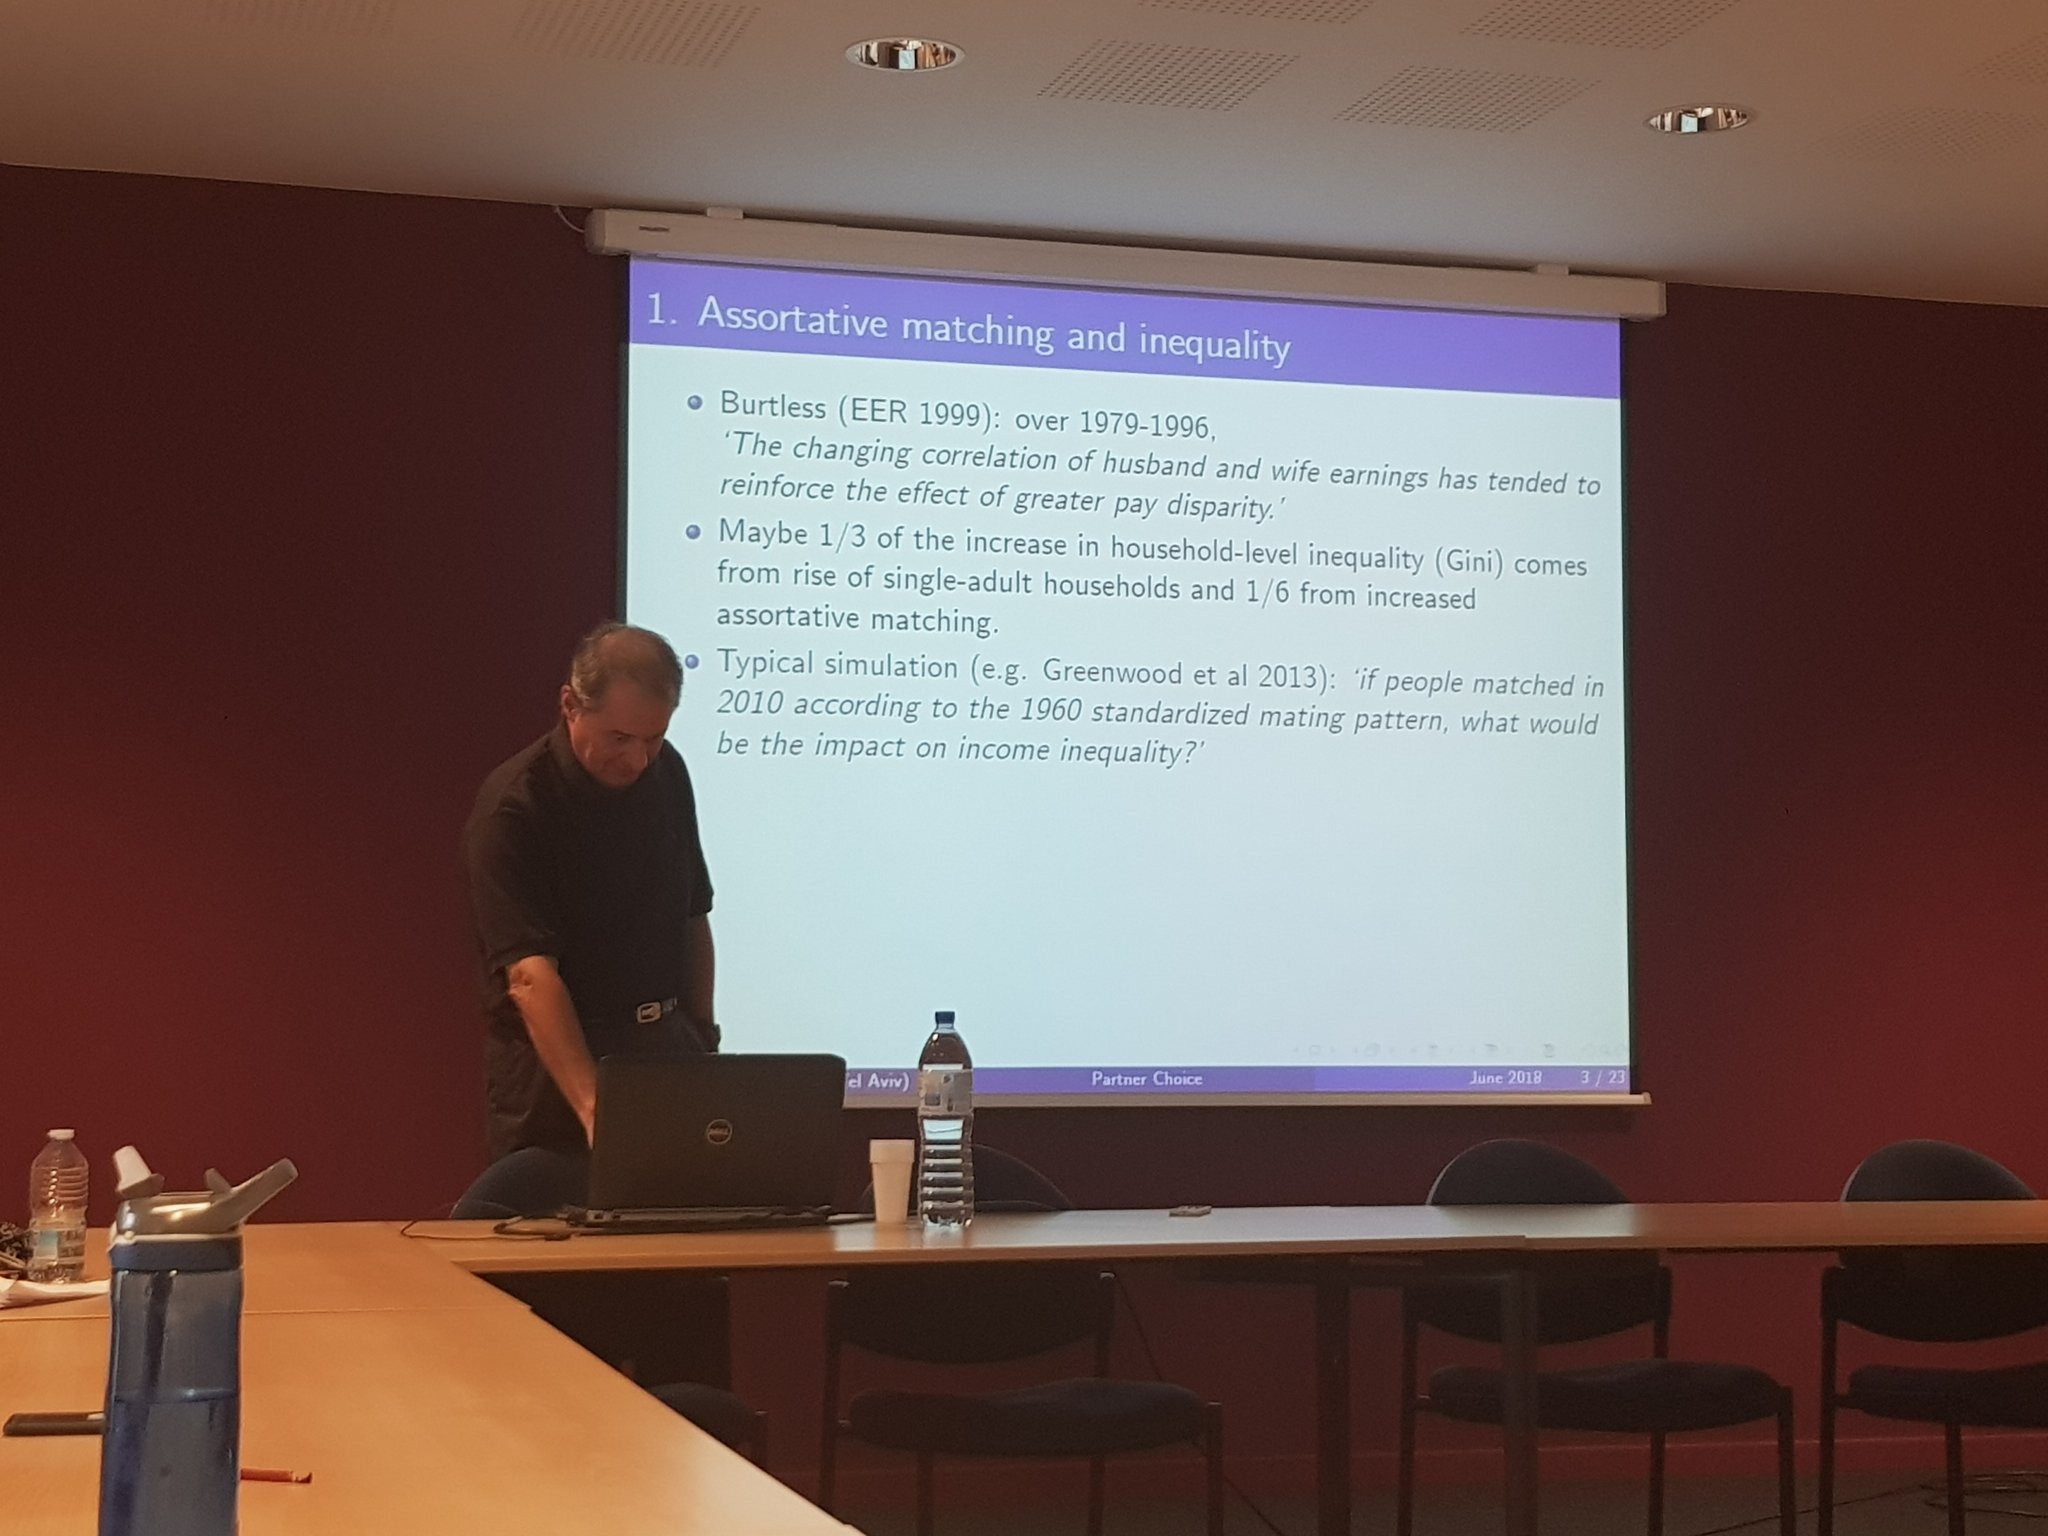 Pierre André Chiappori at ARC workshop on 'Marriages, Human Capital and the Macroeconomy' @UCLouvain_be https://t.co/ZnxdJynrLJ